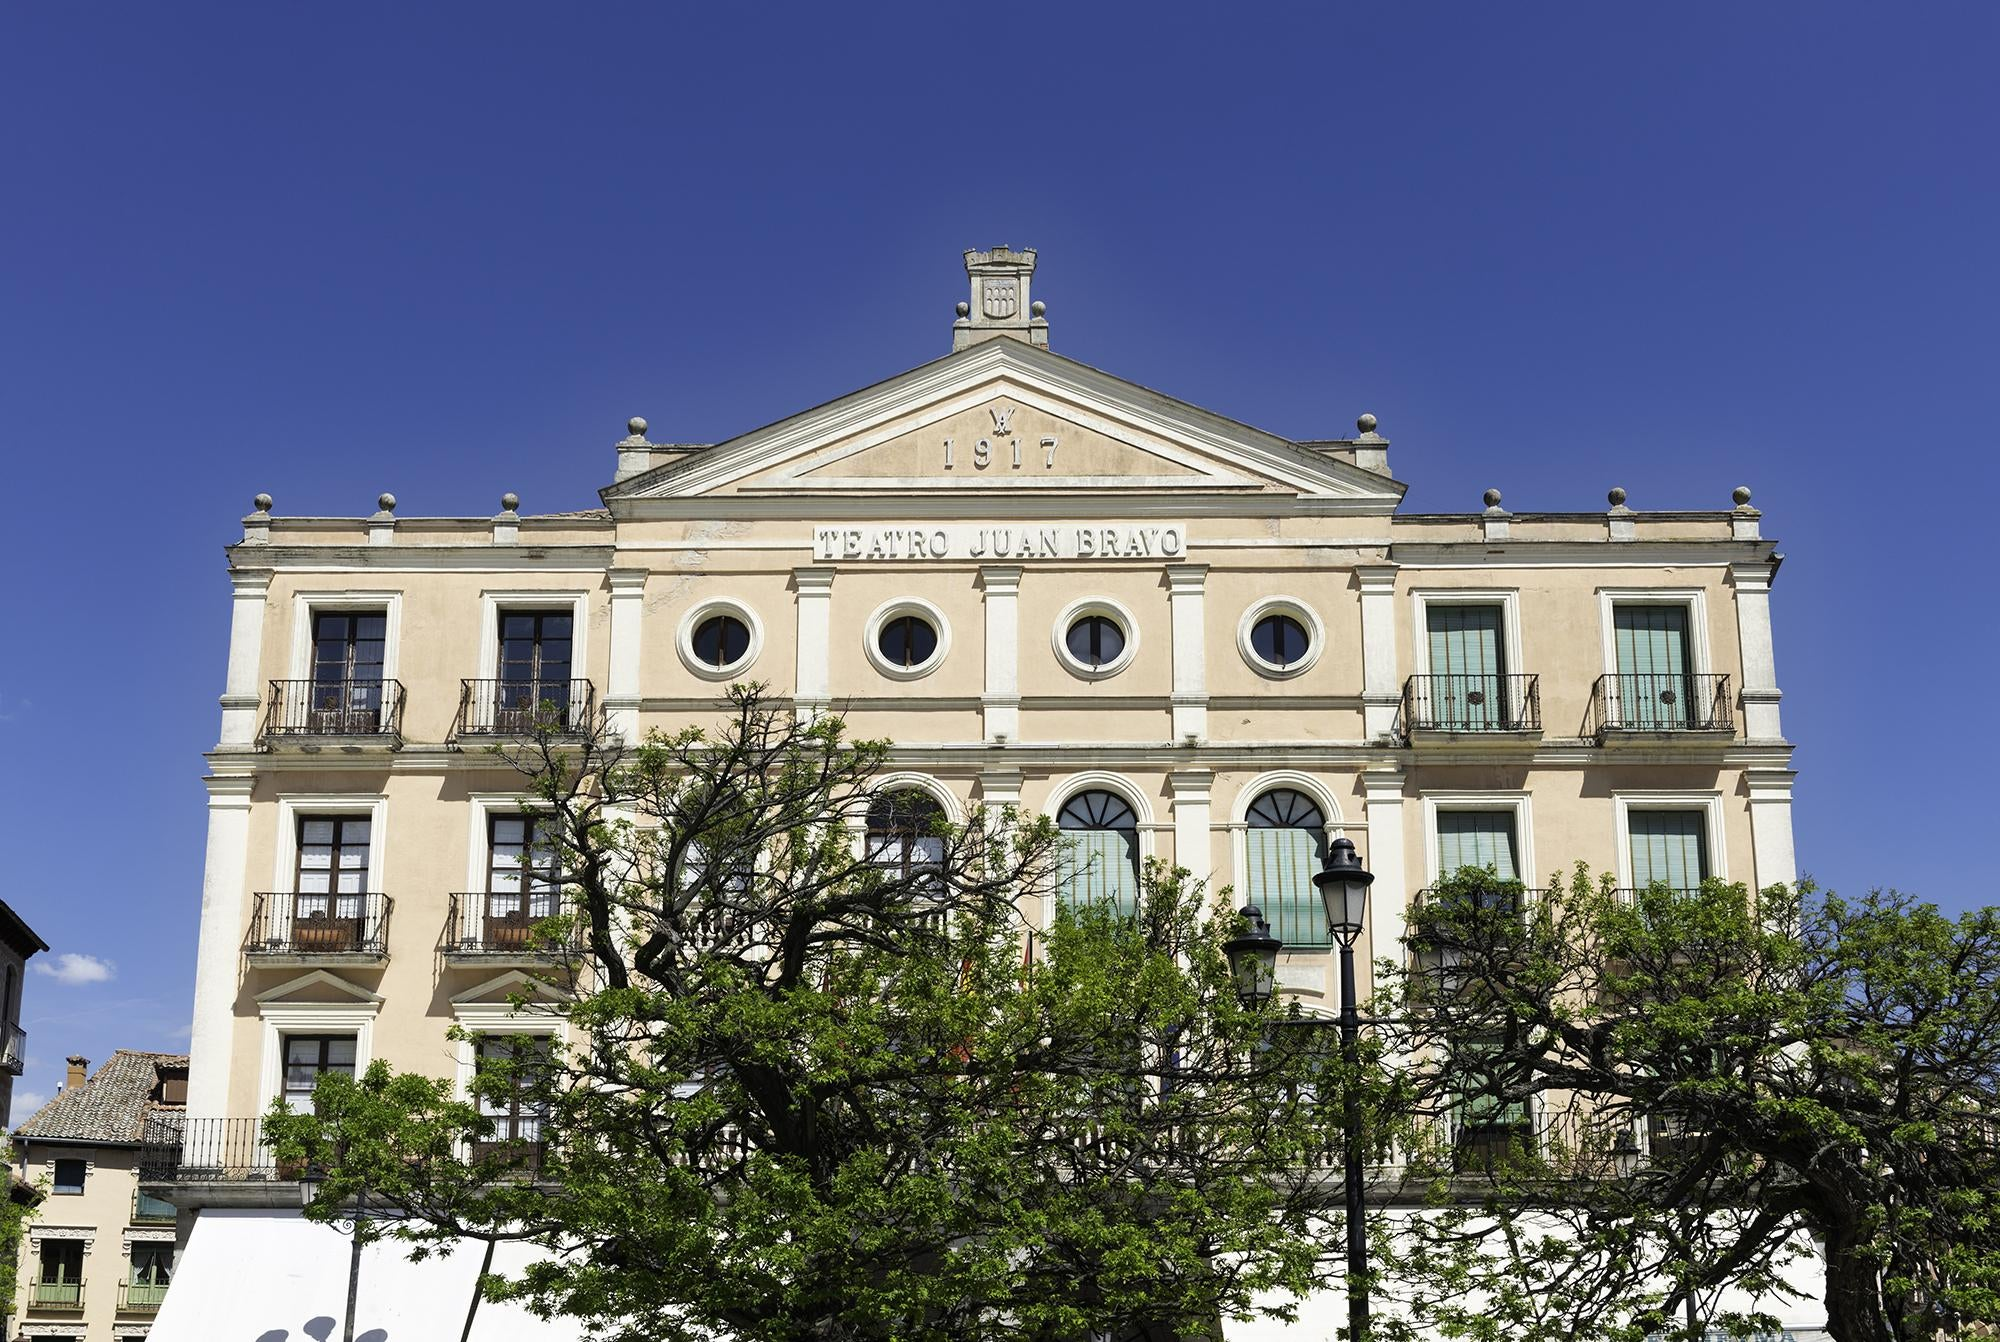 Palacio de justicia en Plaza Mayor